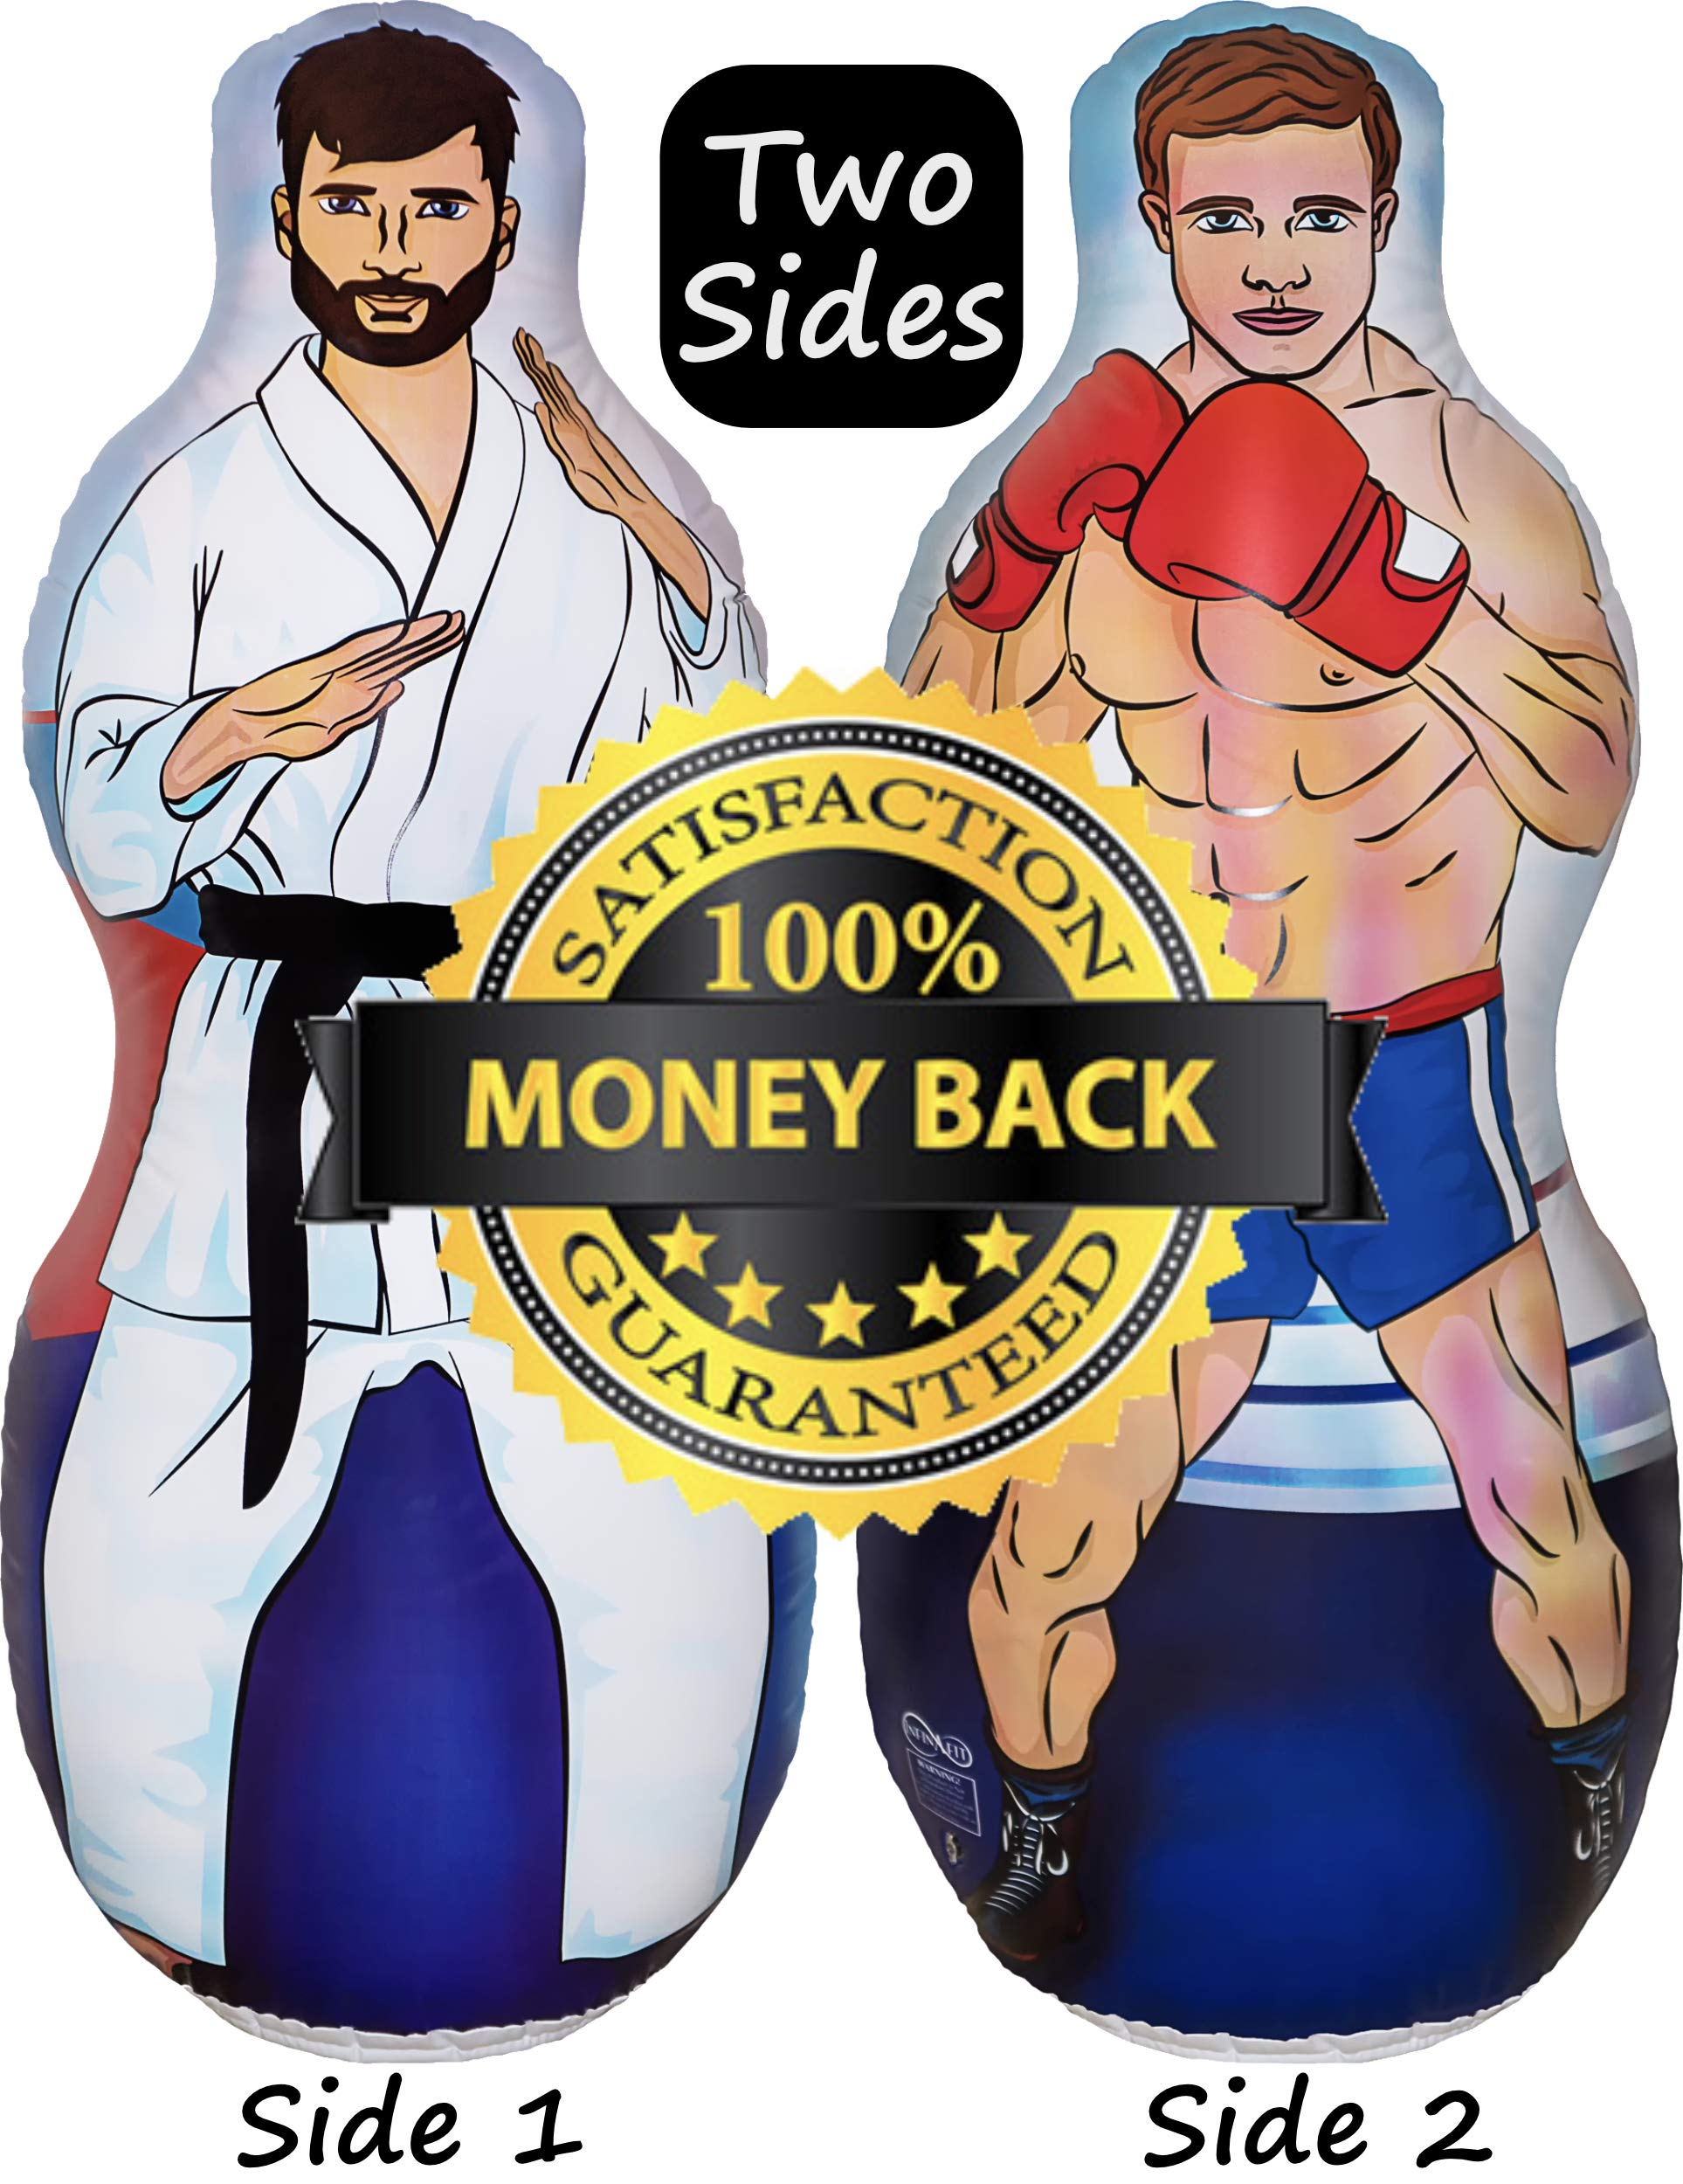 Infinafit Inflatable Two Sided Karate and Boxing Punching Bag   Includes One Inflatable 5 Foot Tall Bop Bag with Illustration of a Karate Master on One Side and Boxer on Reverse Side by ImpiriLux (Image #1)